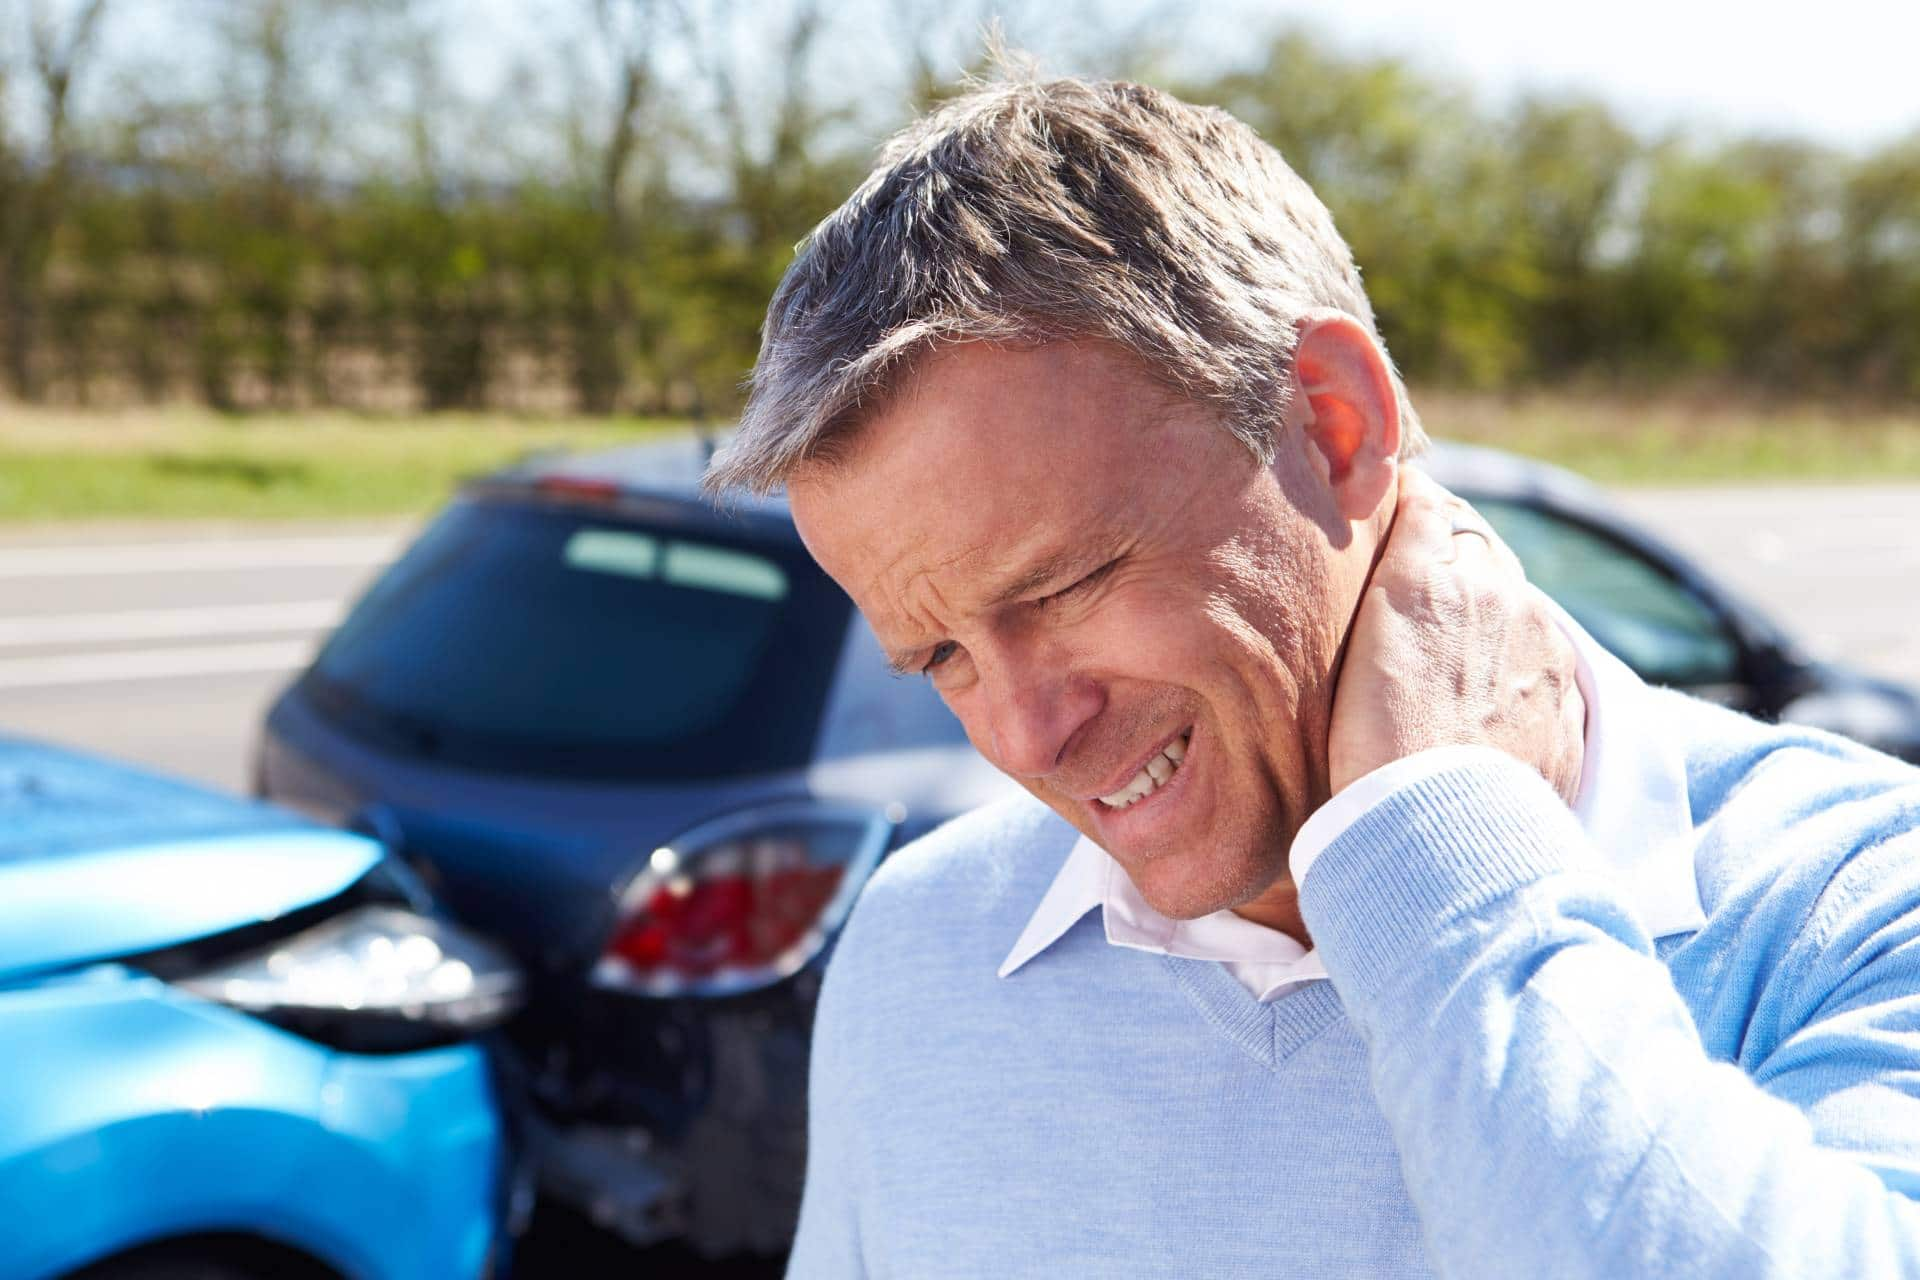 Injured in a car accident? Schedule a free consultation with our personal injury lawyers at the Angell Law Firm in Roswell, Ga.